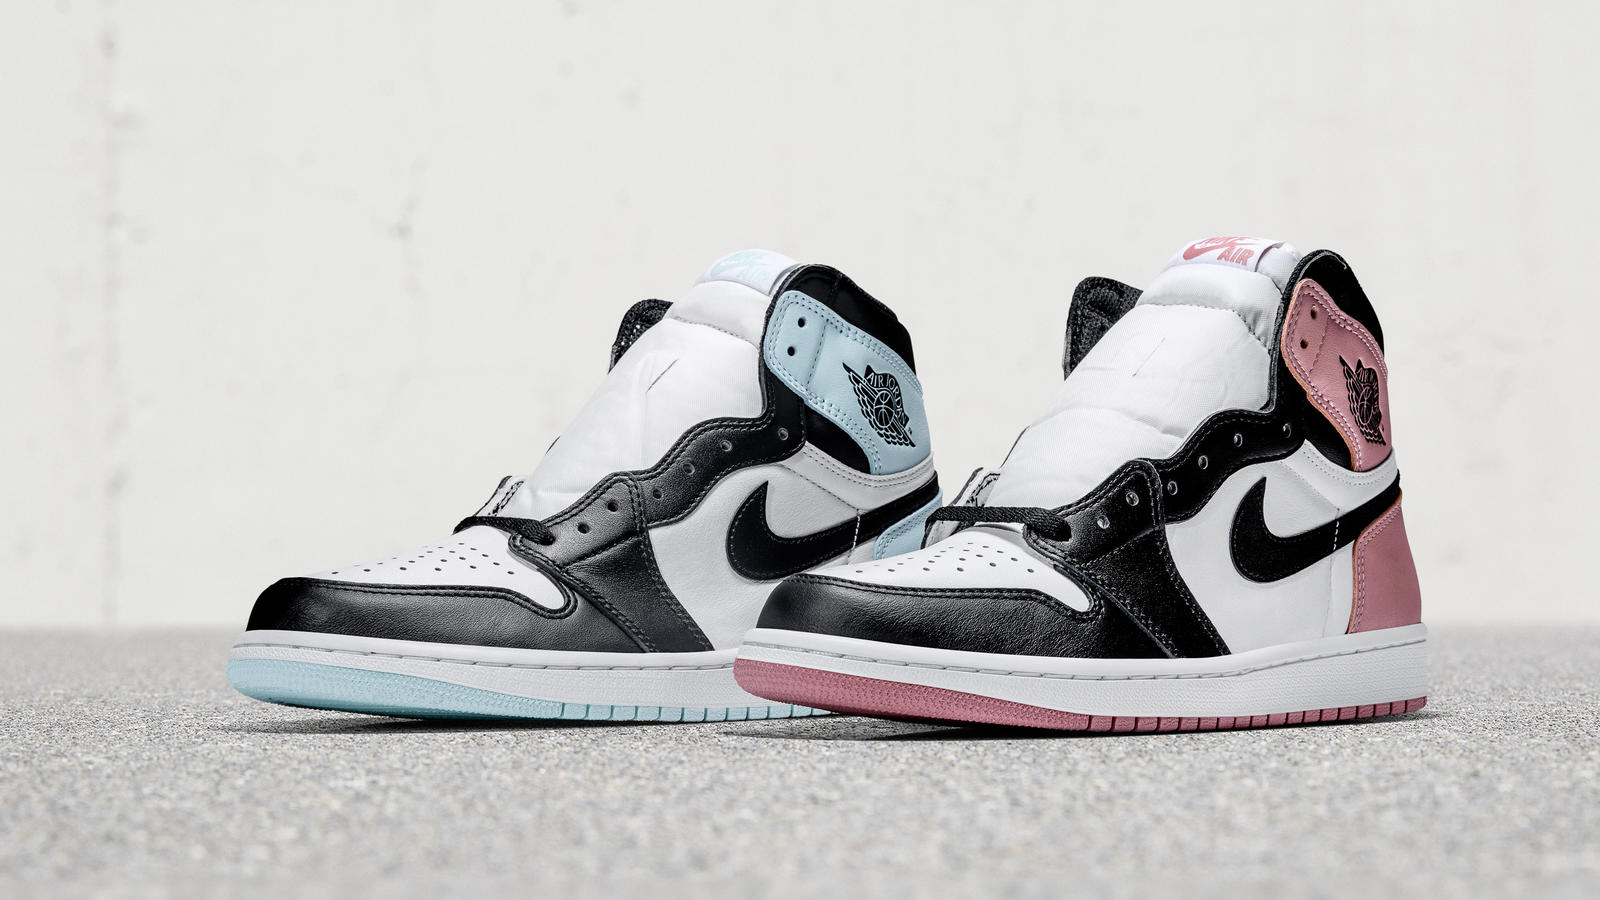 Air Jordan 1 Igloo and Rust Pink - Nike News 9bd4409a7